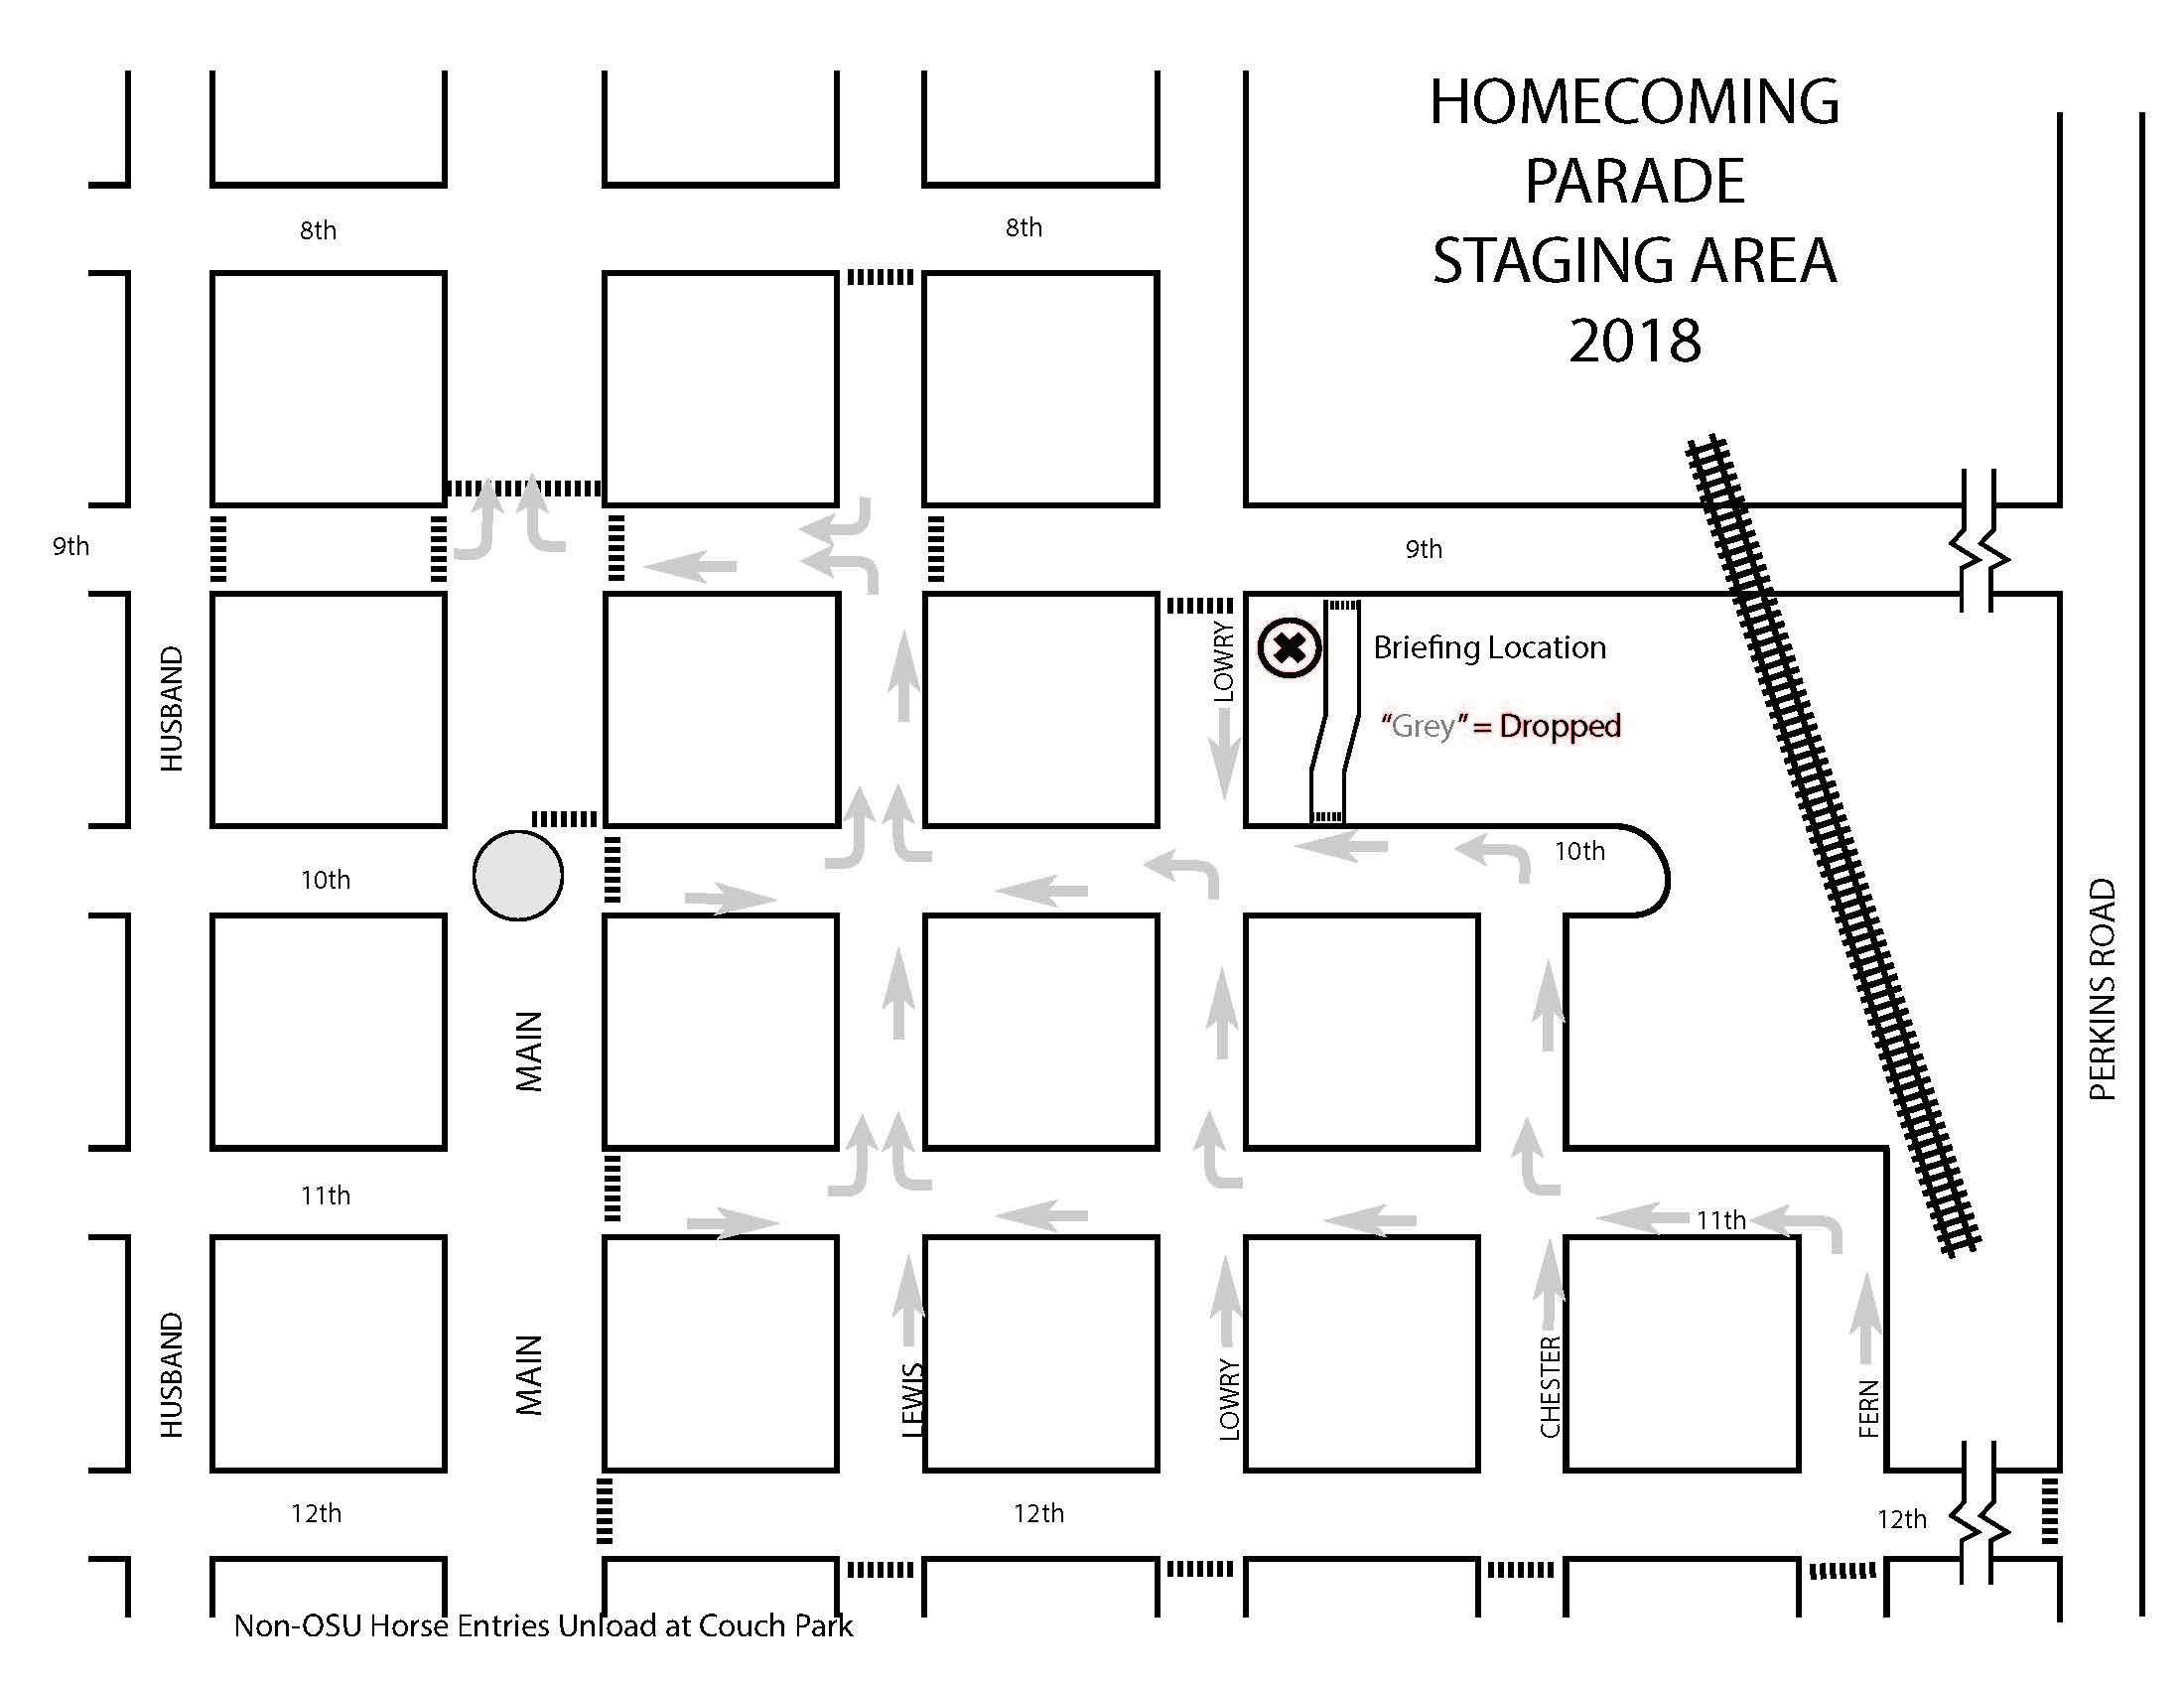 2018 OSU Homecoming Parade Staging Map